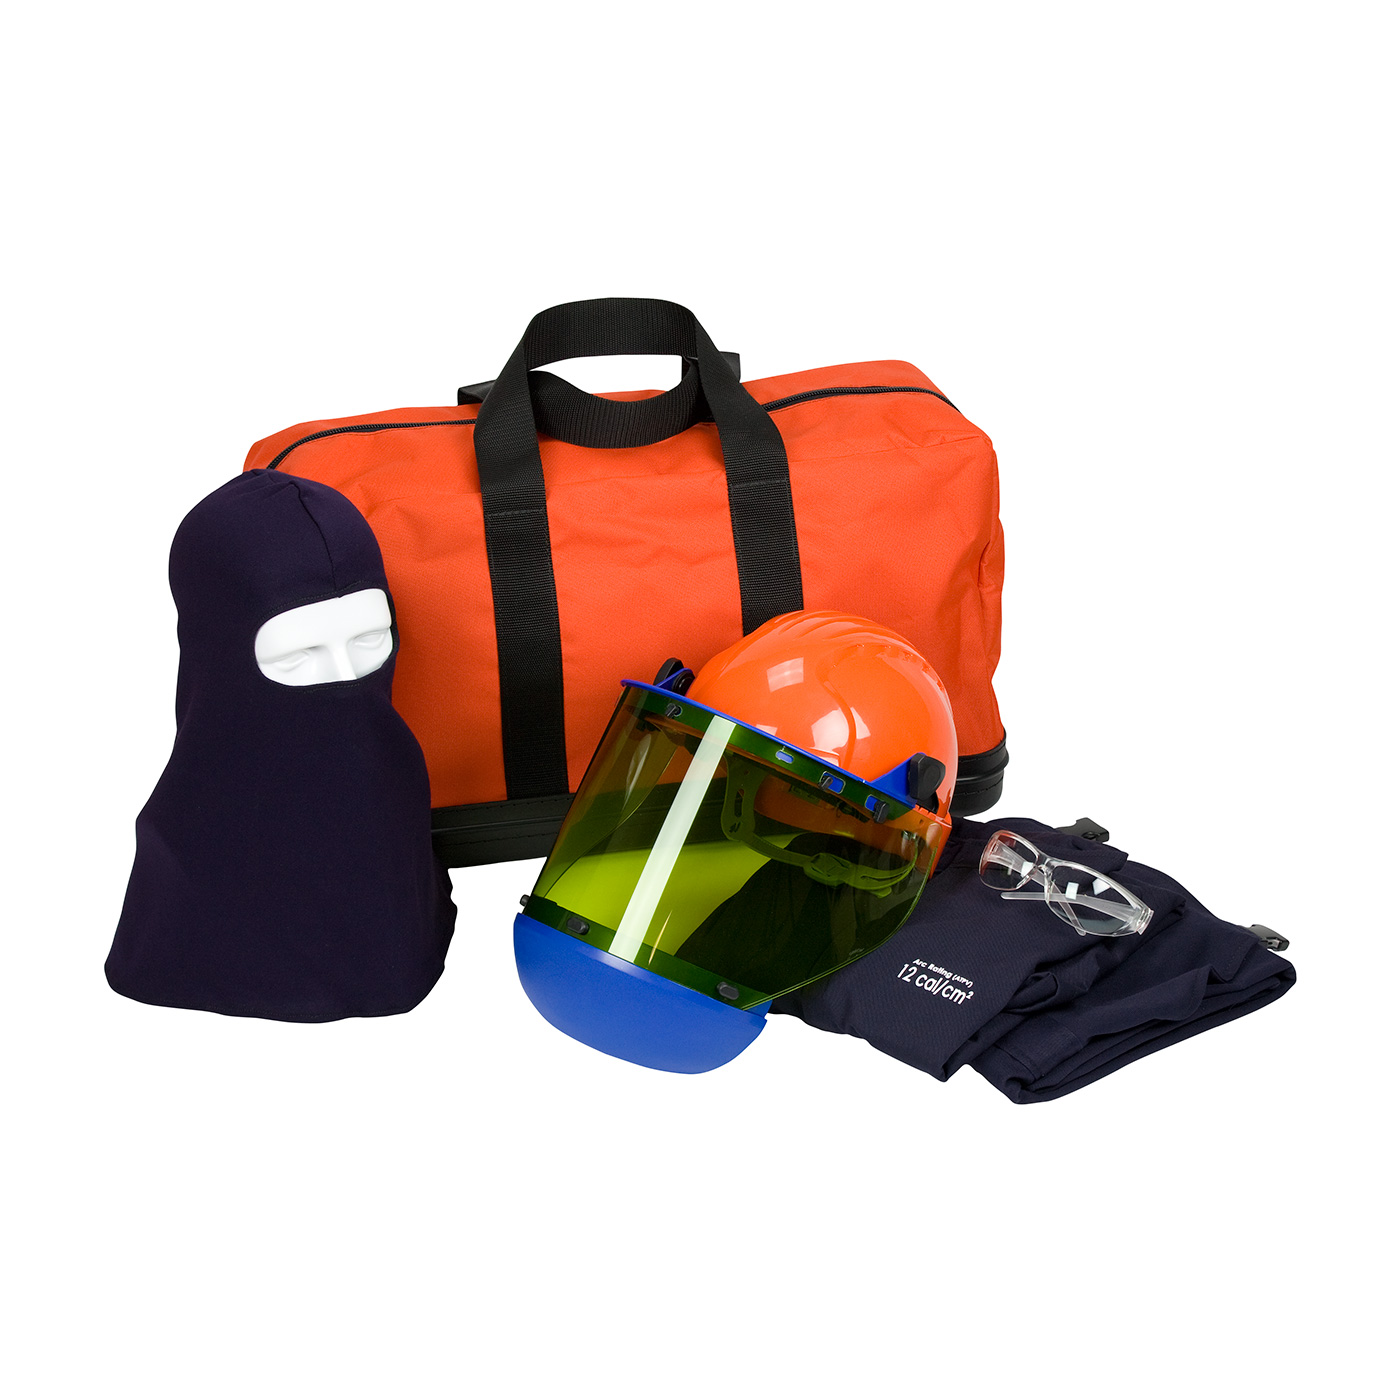 #9150-52810 PIP® PPE 2 Arc Flash Kit - 12 Cal/cm2 Contains  jacket, overpant, hard hat with arc shield, balaclava, safety glasses and carry bag